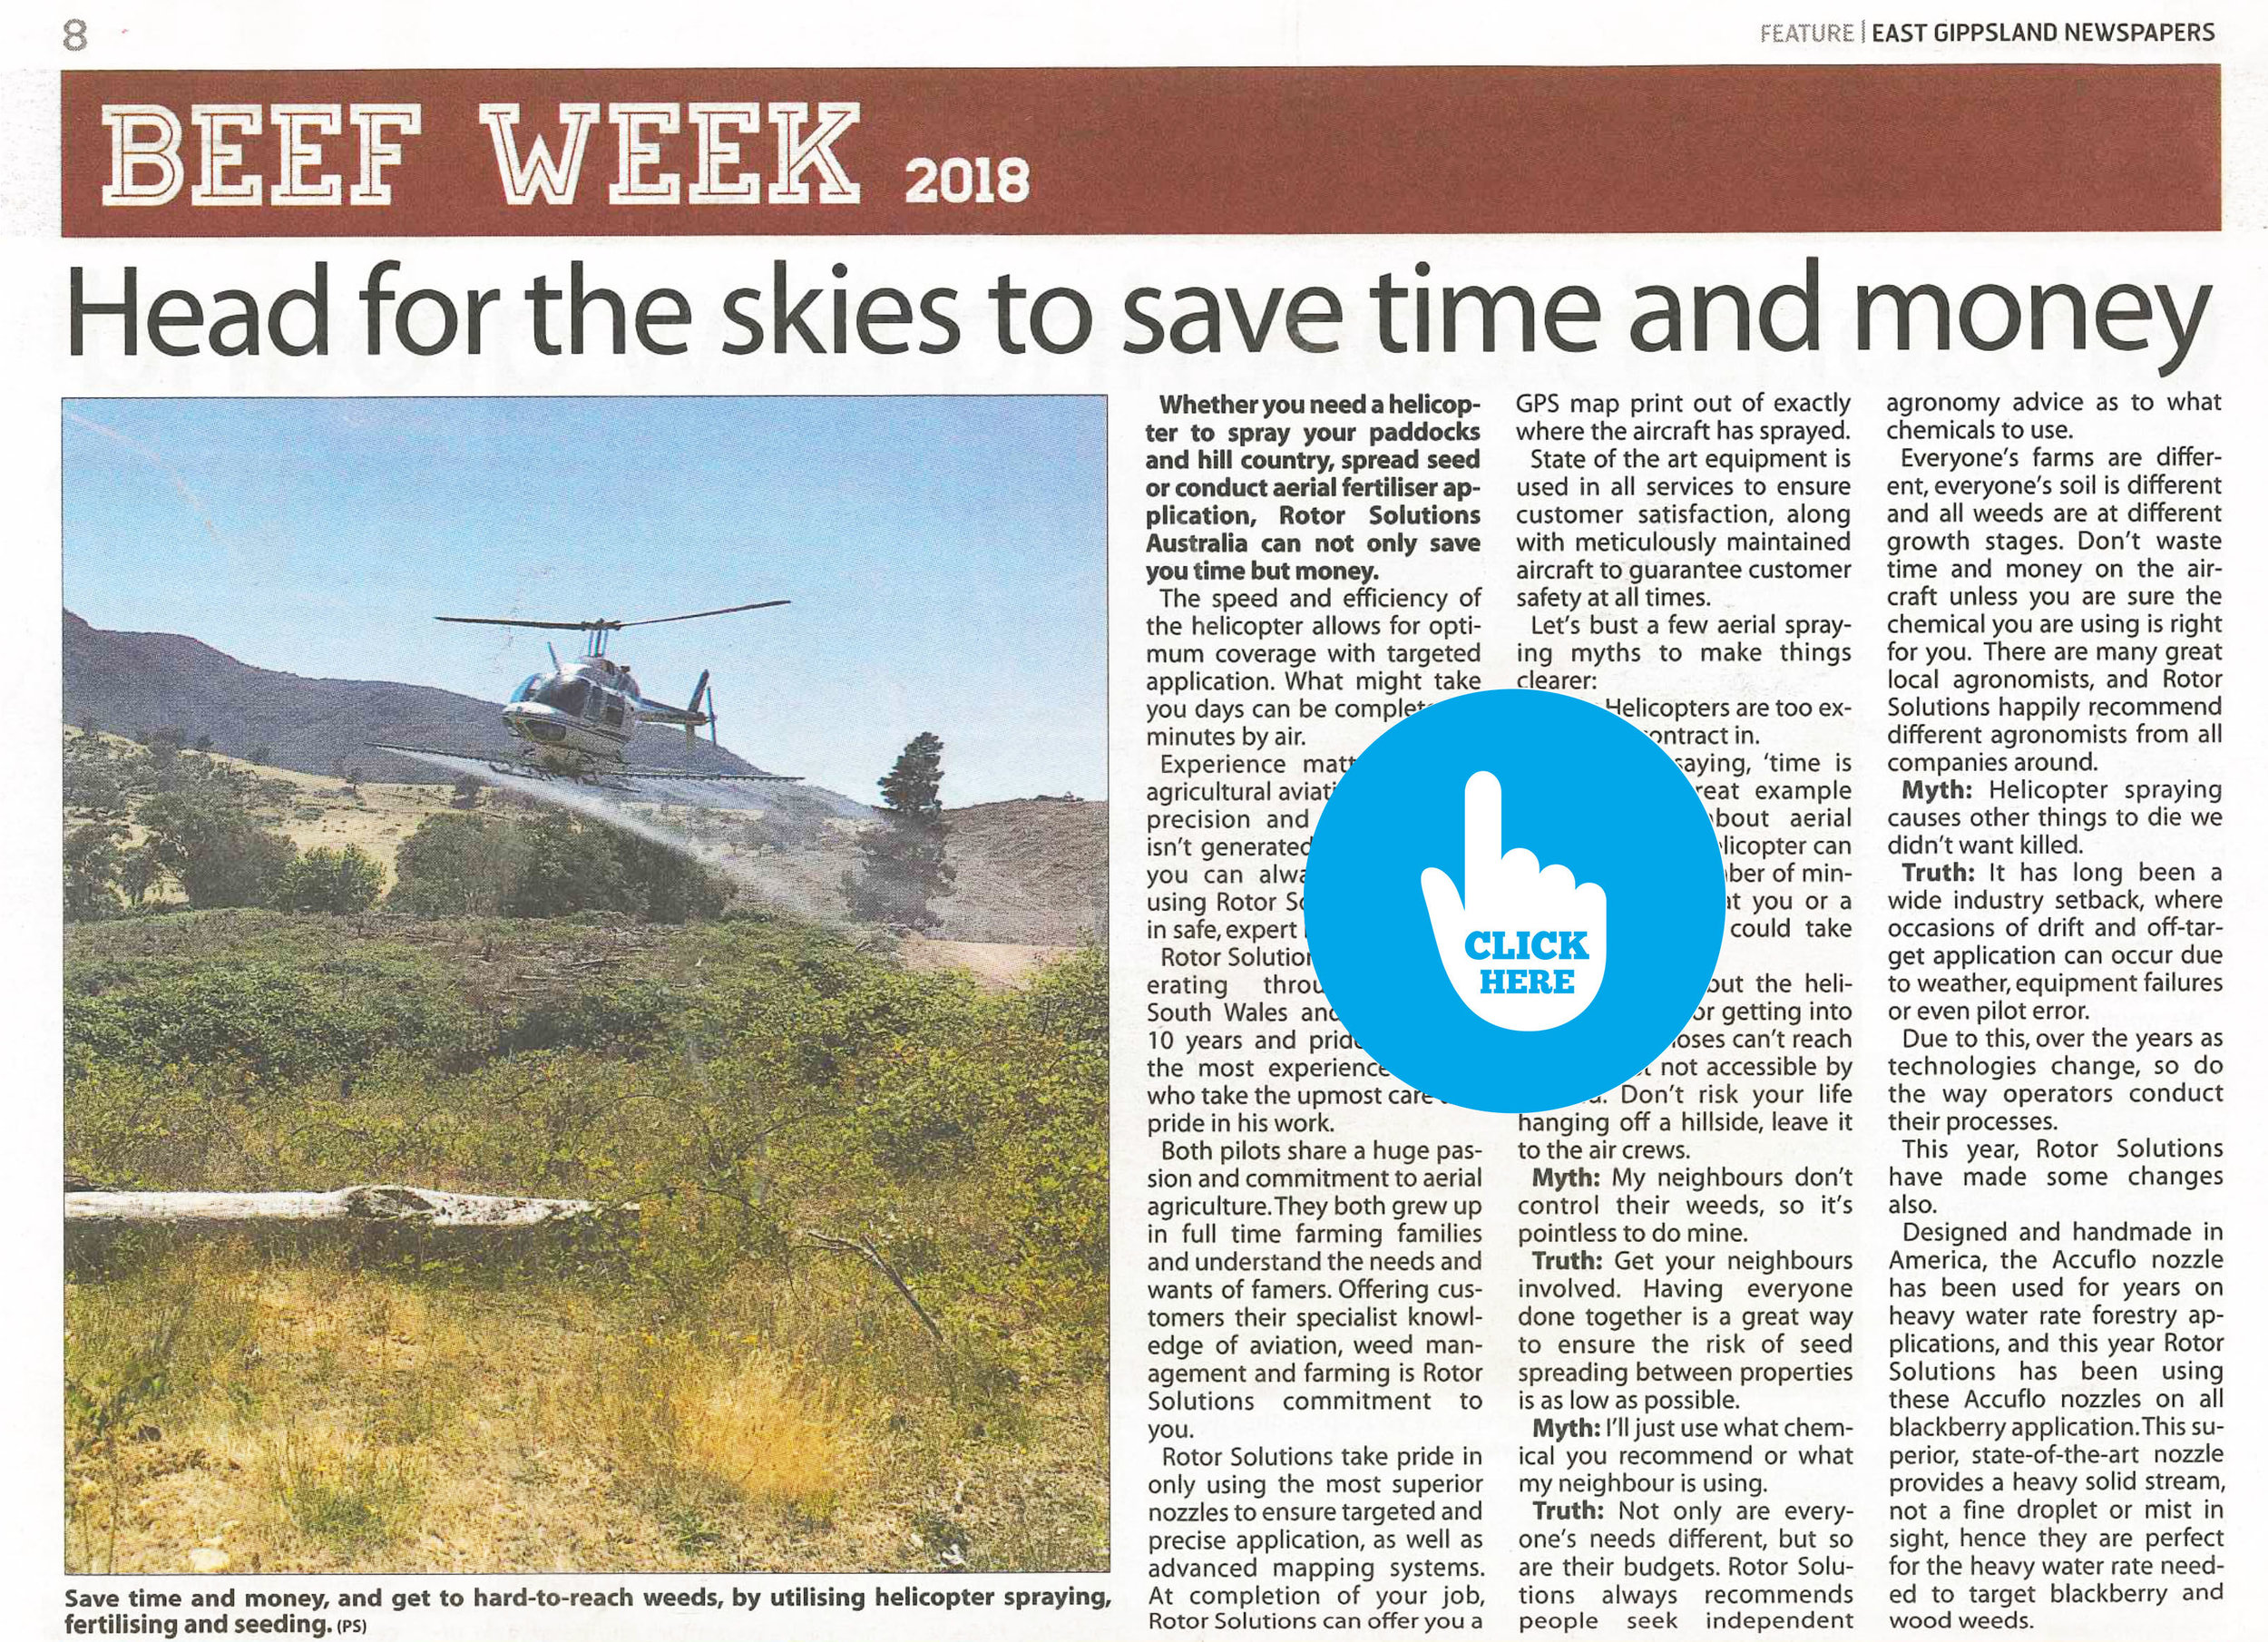 """Head for the skies to save time and money"" - January 2018 - East Gippsland Newspapers - BEEF WEEK FEATURE    BEEF WEEK WON BEST FEATURE 2018 - VICTORIAN COUNTRY PRESS ASSOCIATION AWARDS"